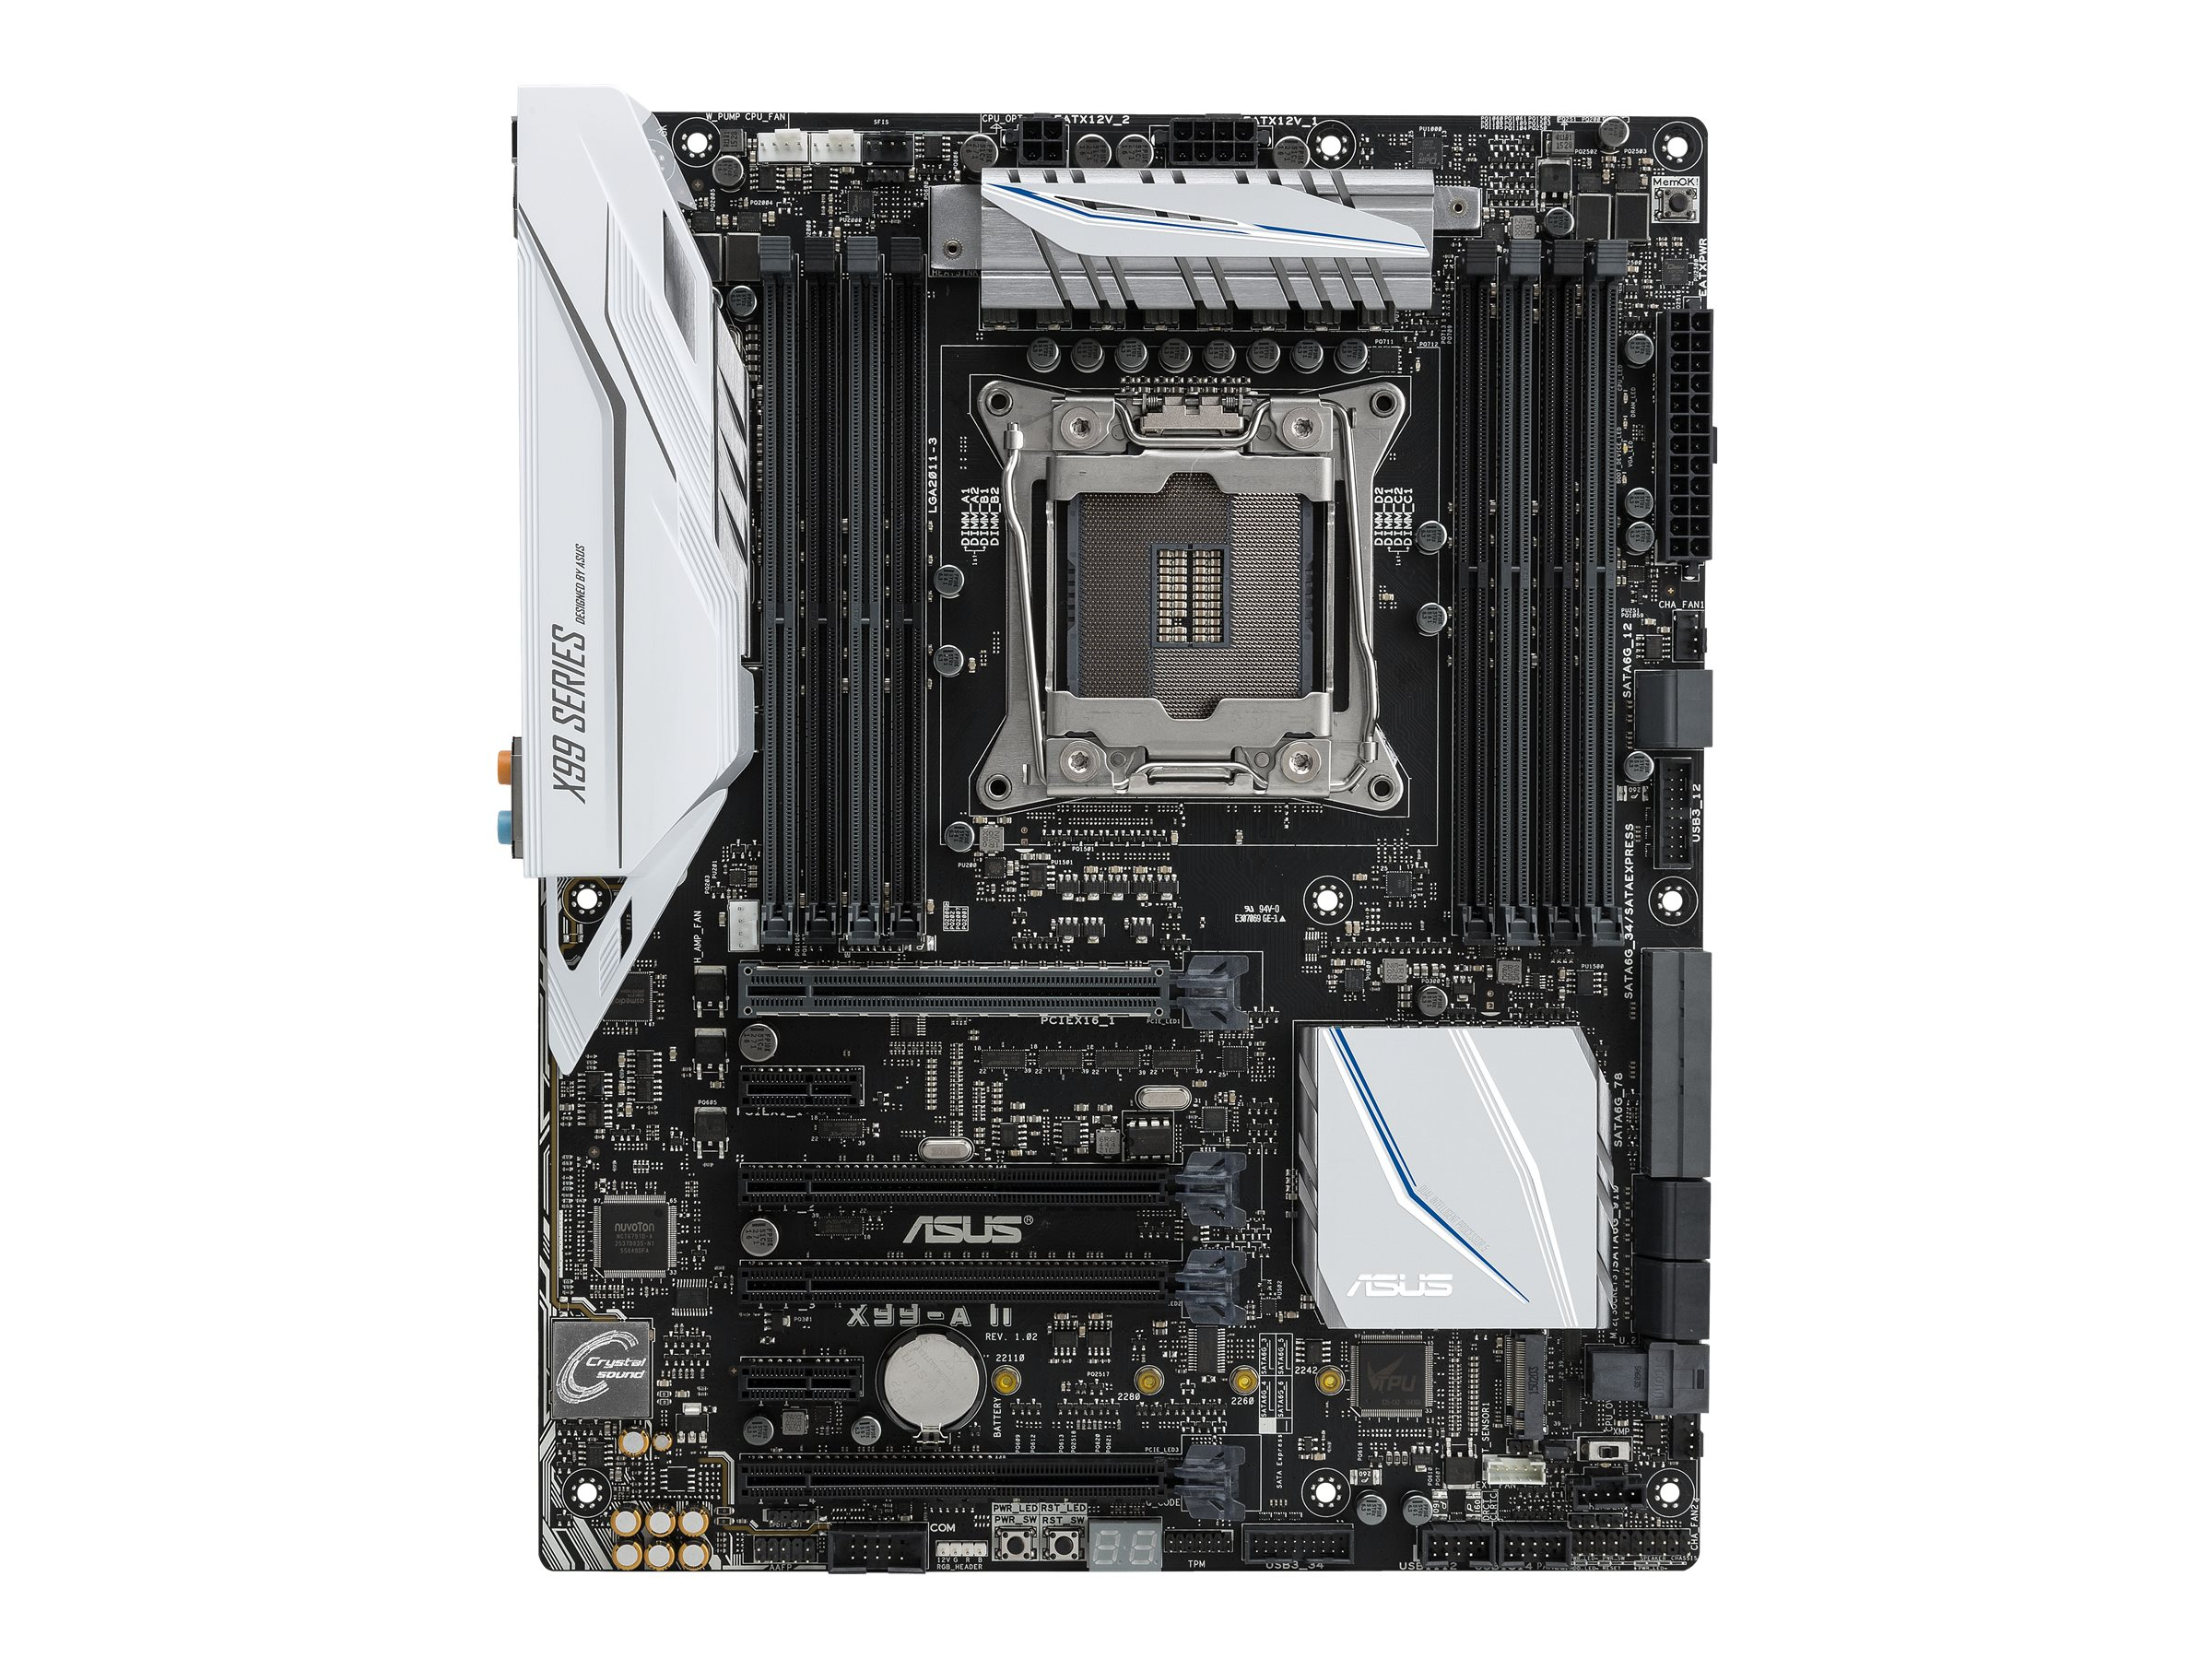 ASUS X99-A II - Motherboard - ATX